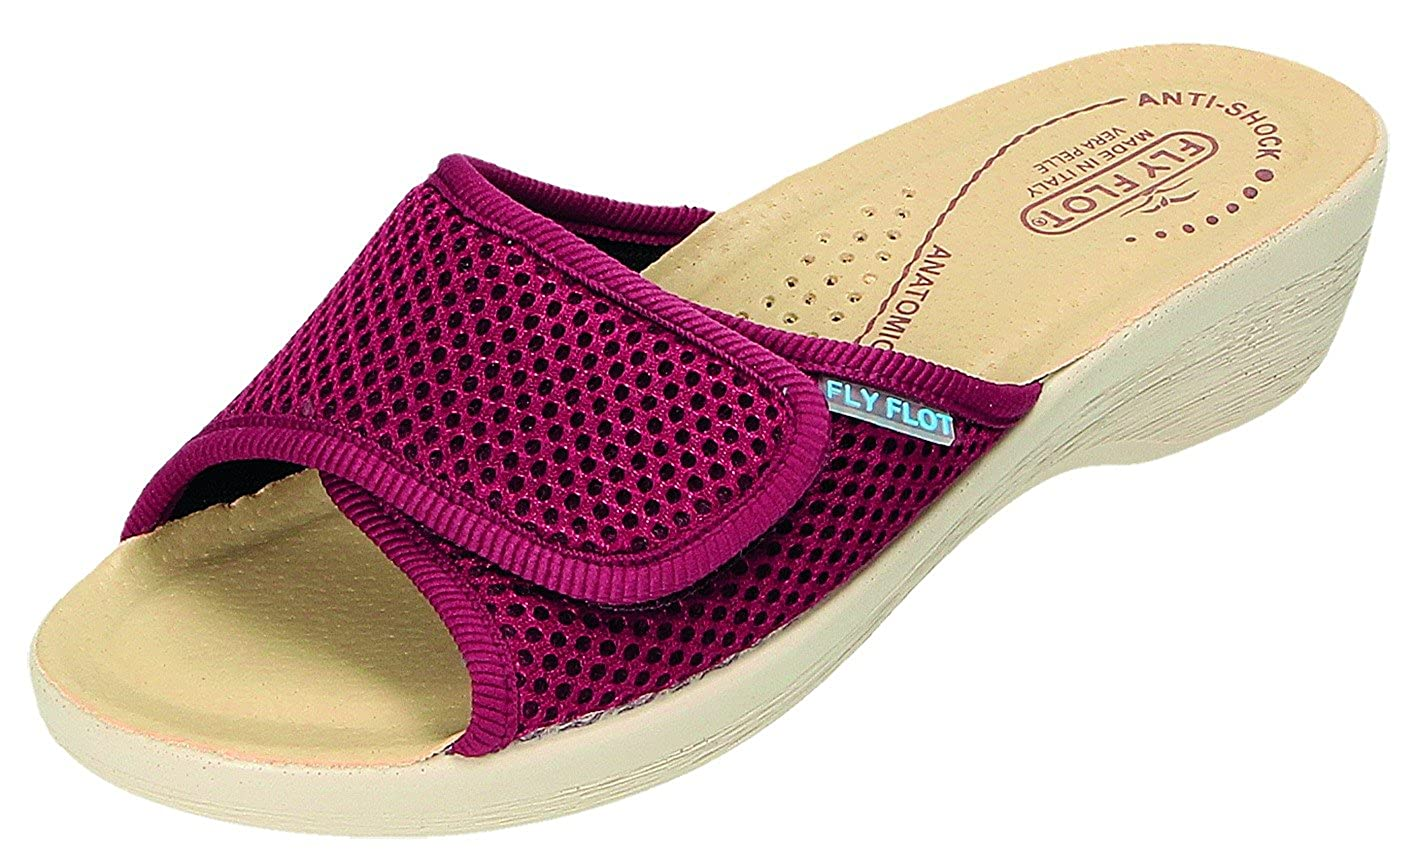 2d21f4f37c45 Fly Flot Women s Slippers Red Bordeaux Red Red Size  8 UK  Amazon.co.uk   Shoes   Bags